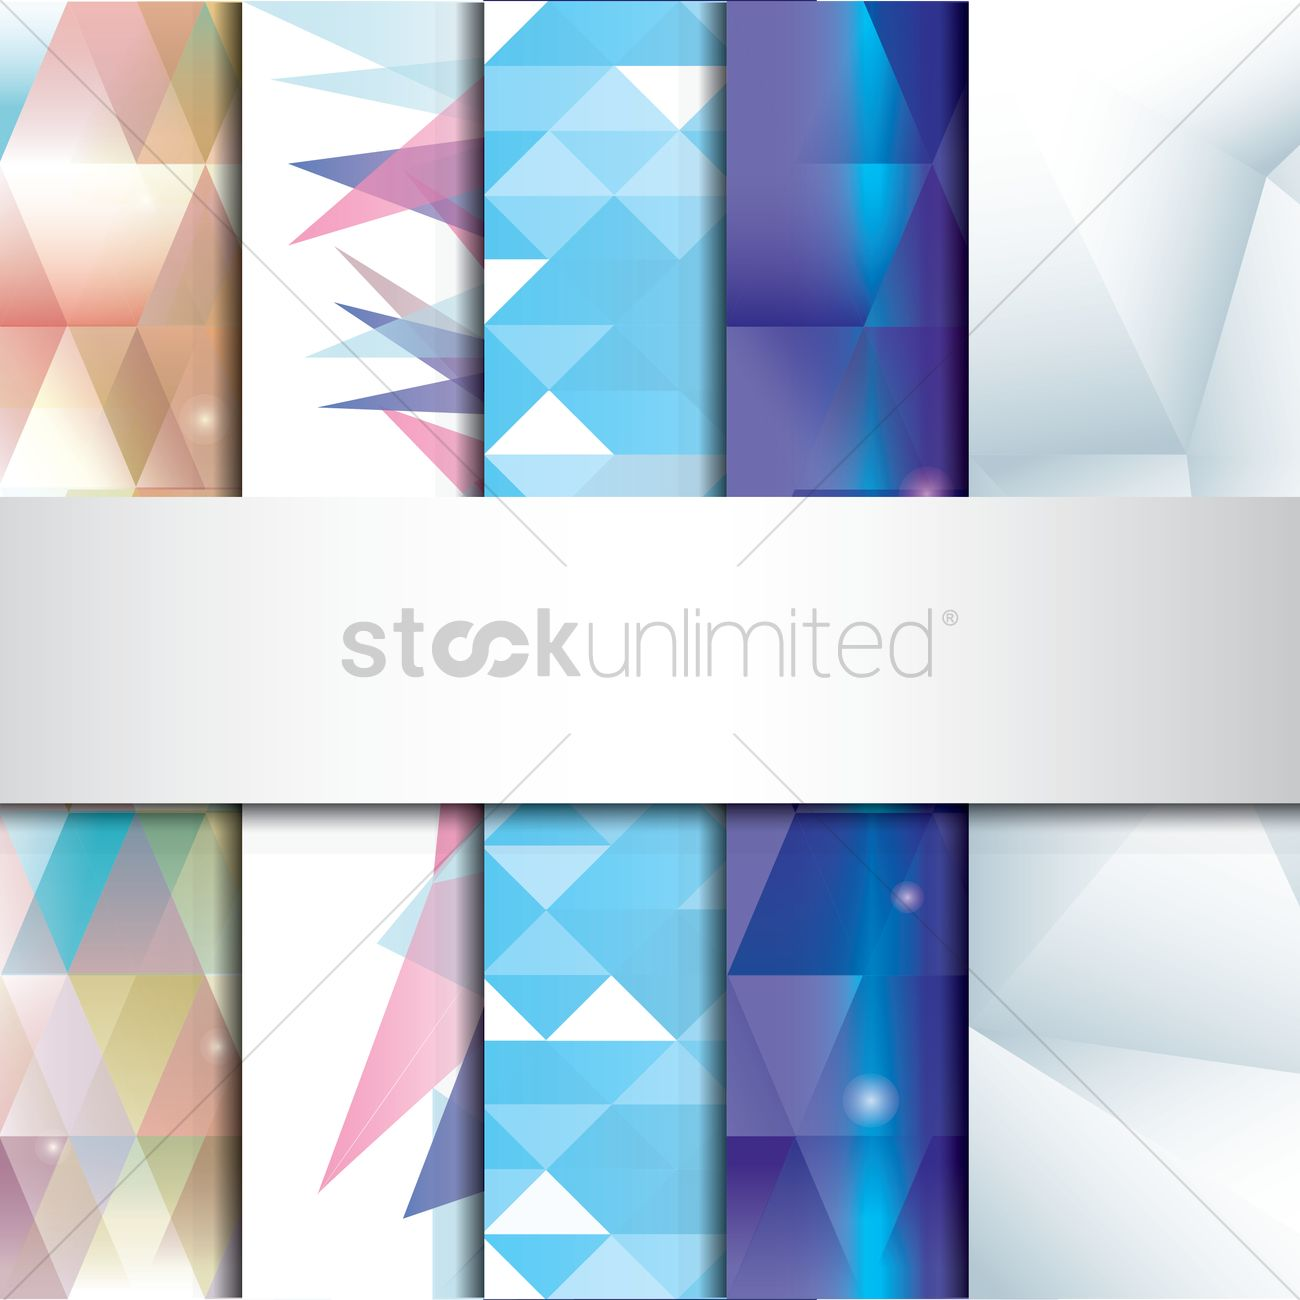 Set of faceted backgrounds Vector Image - 1582603 | StockUnlimited